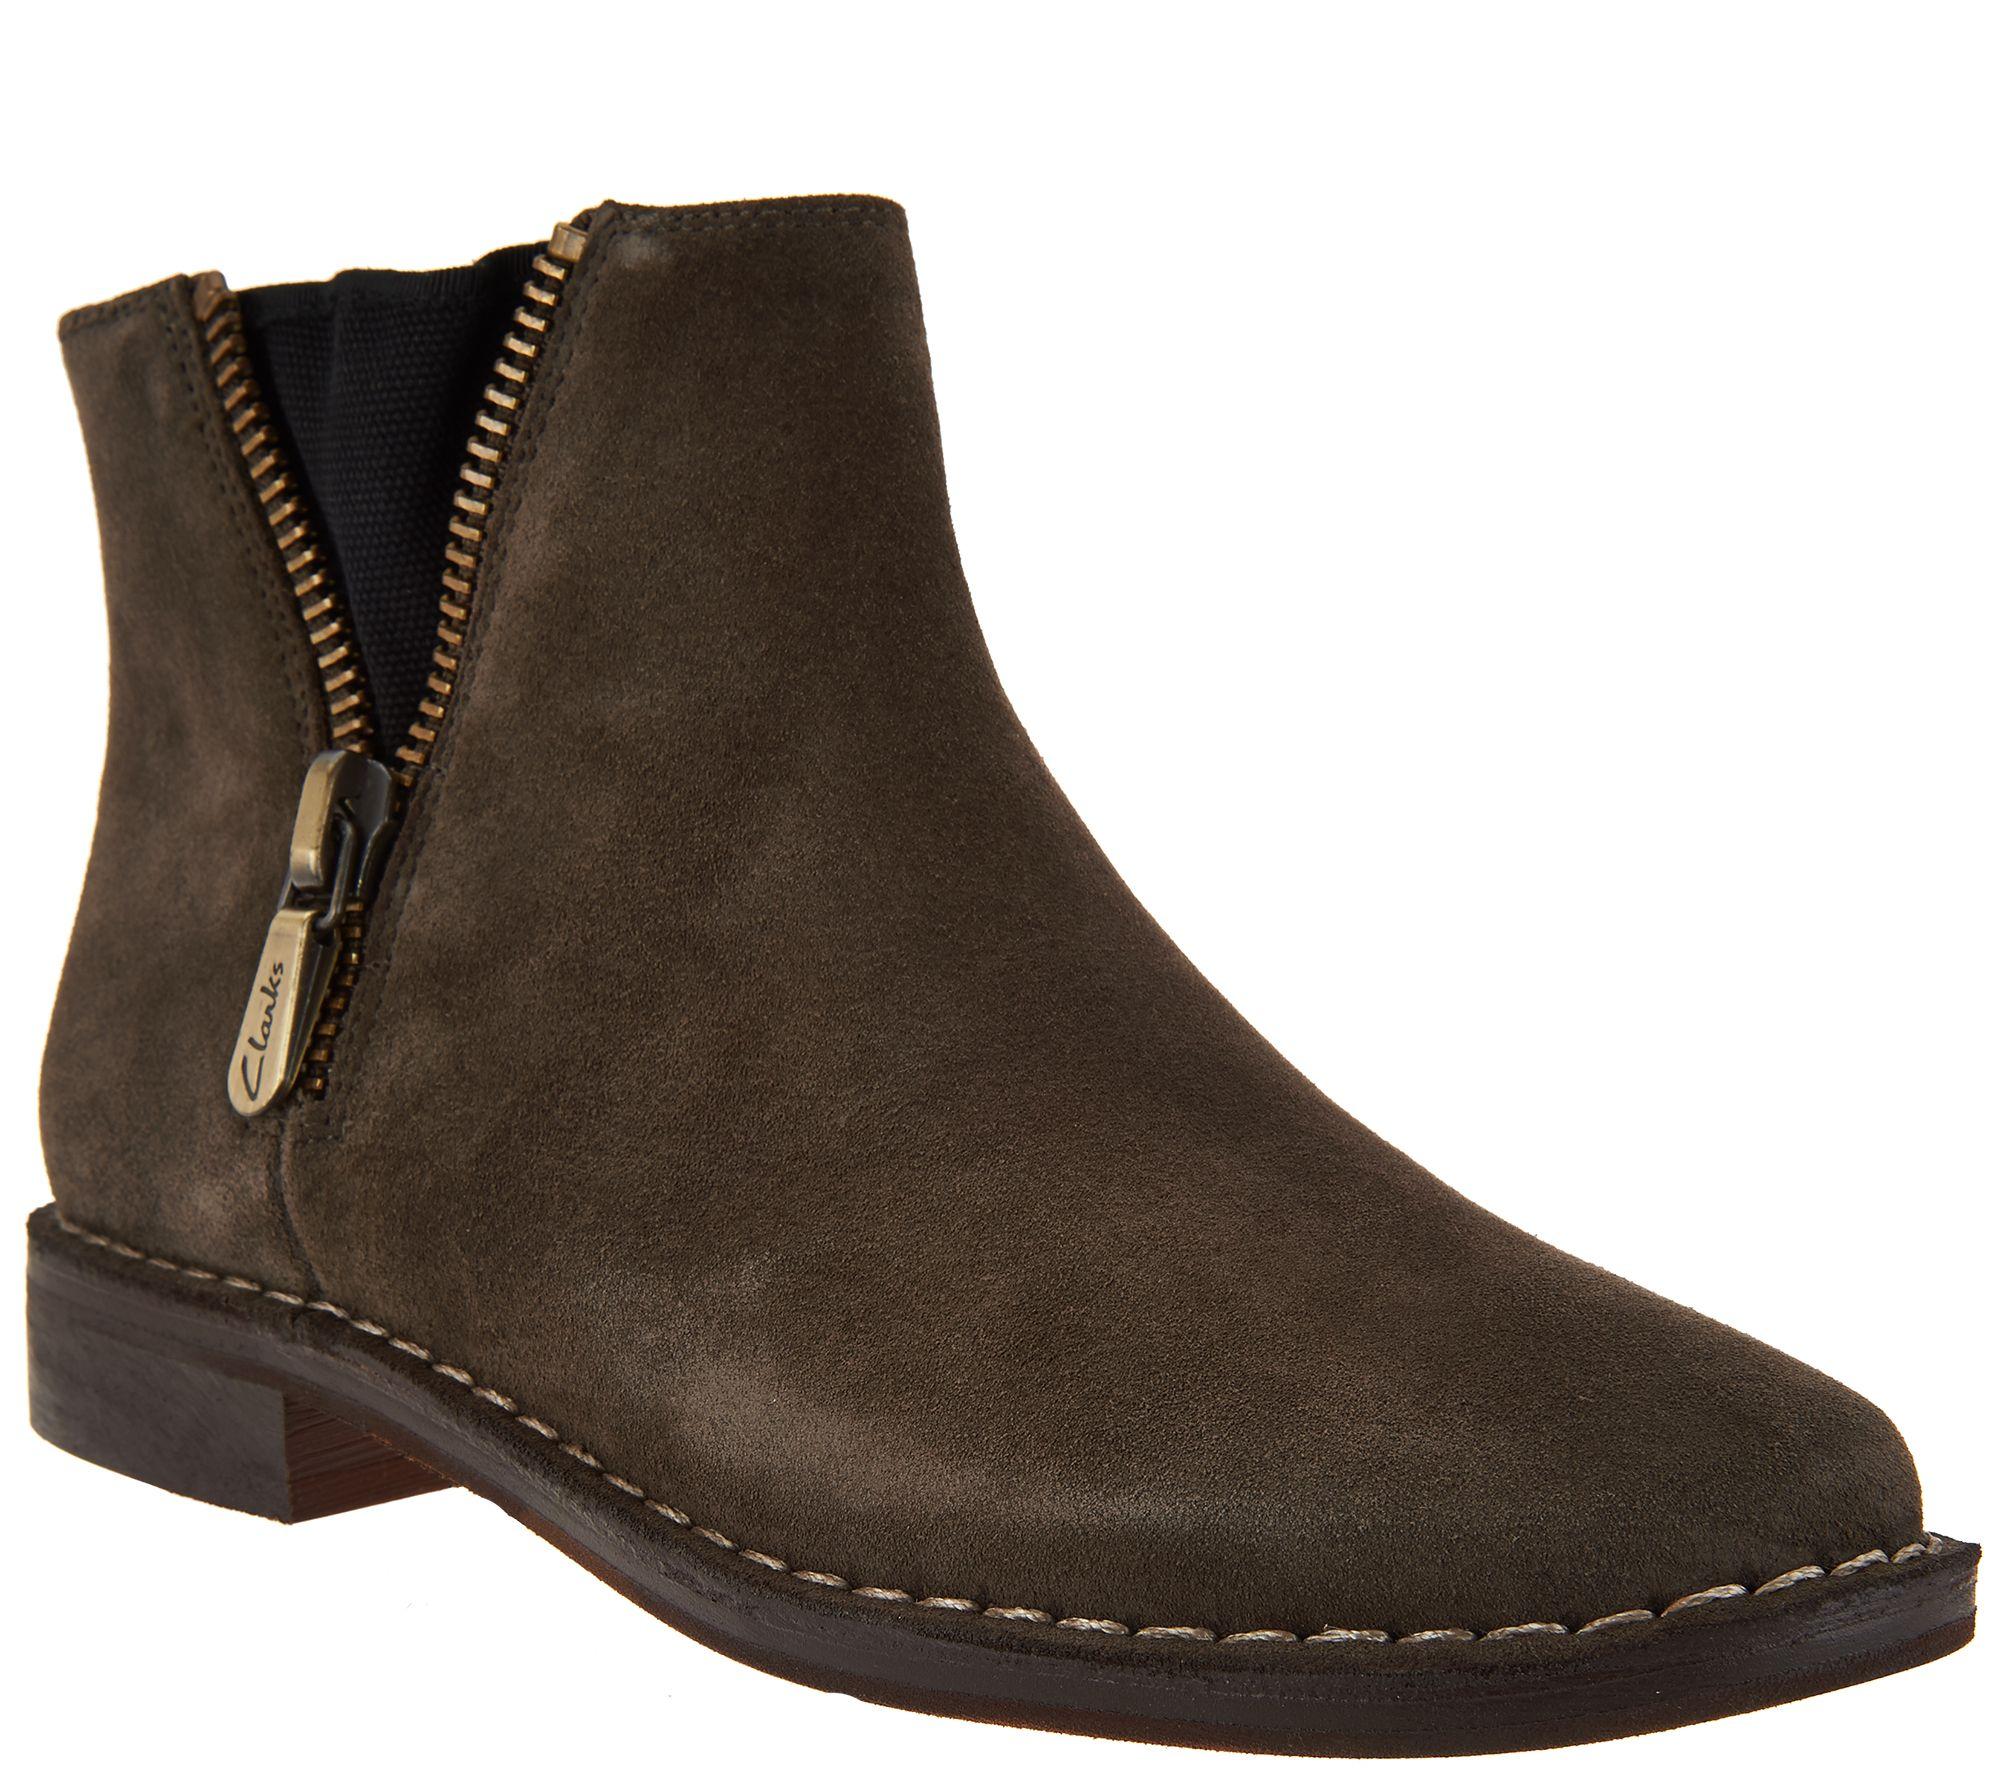 Clarks Womens Boots & Clarks Booties Up to 75% Off! FREE Shipping & Exchanges. Choose from a huge selection of Clarks Boots for Women. Free Shipping. No Minimum. Sale. Clarks Emslie Monet Bootie (Women's) $ $ 20% off. Add to Cart. Quick View. New! Sale. Clarks Maypearl Ramie Ankle Bootie (Women's) $